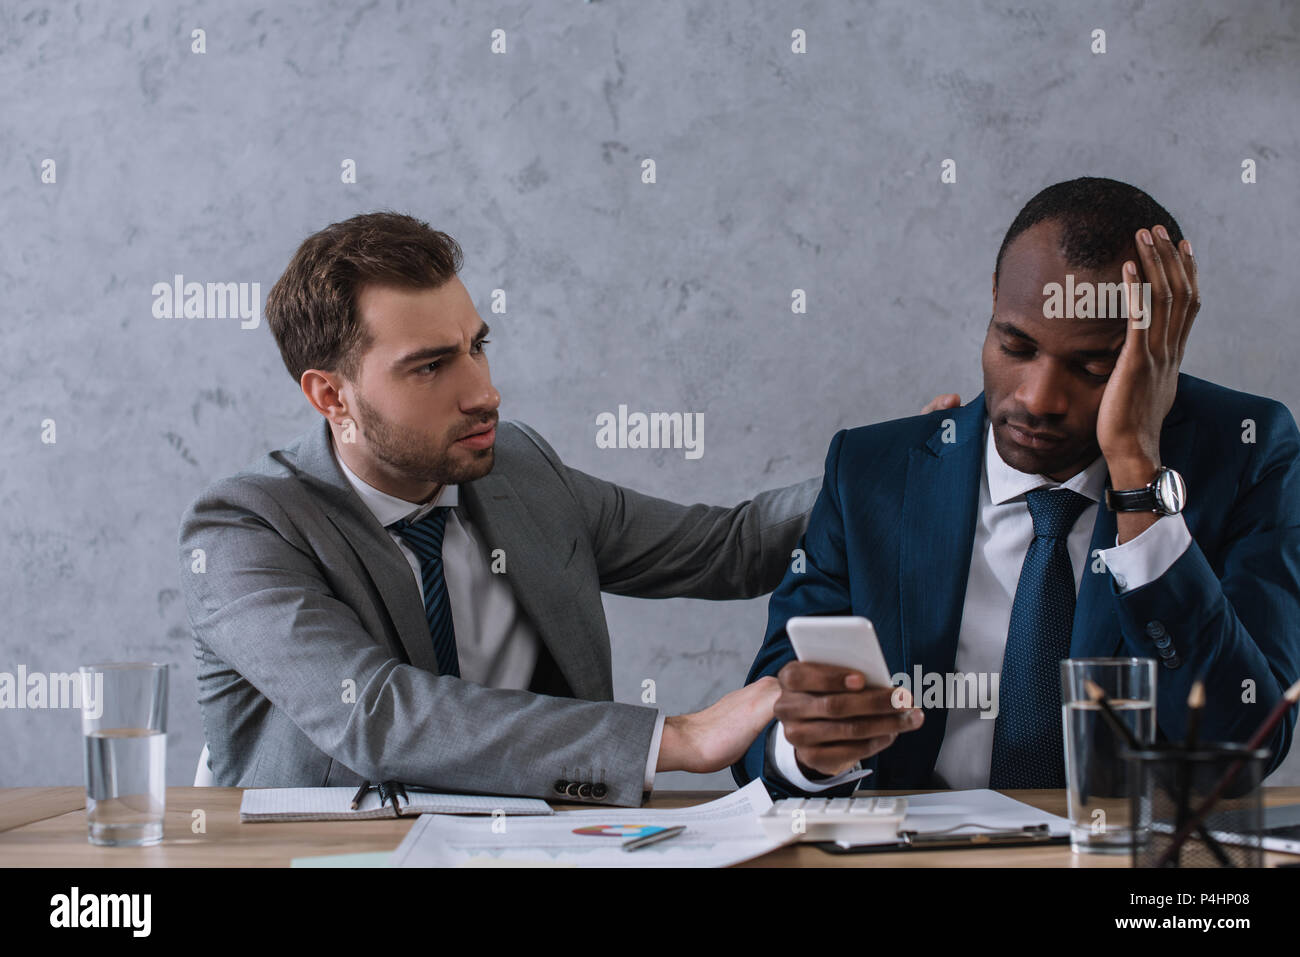 Young stylish businessman cheering up upset partner with smartphone in hand - Stock Image